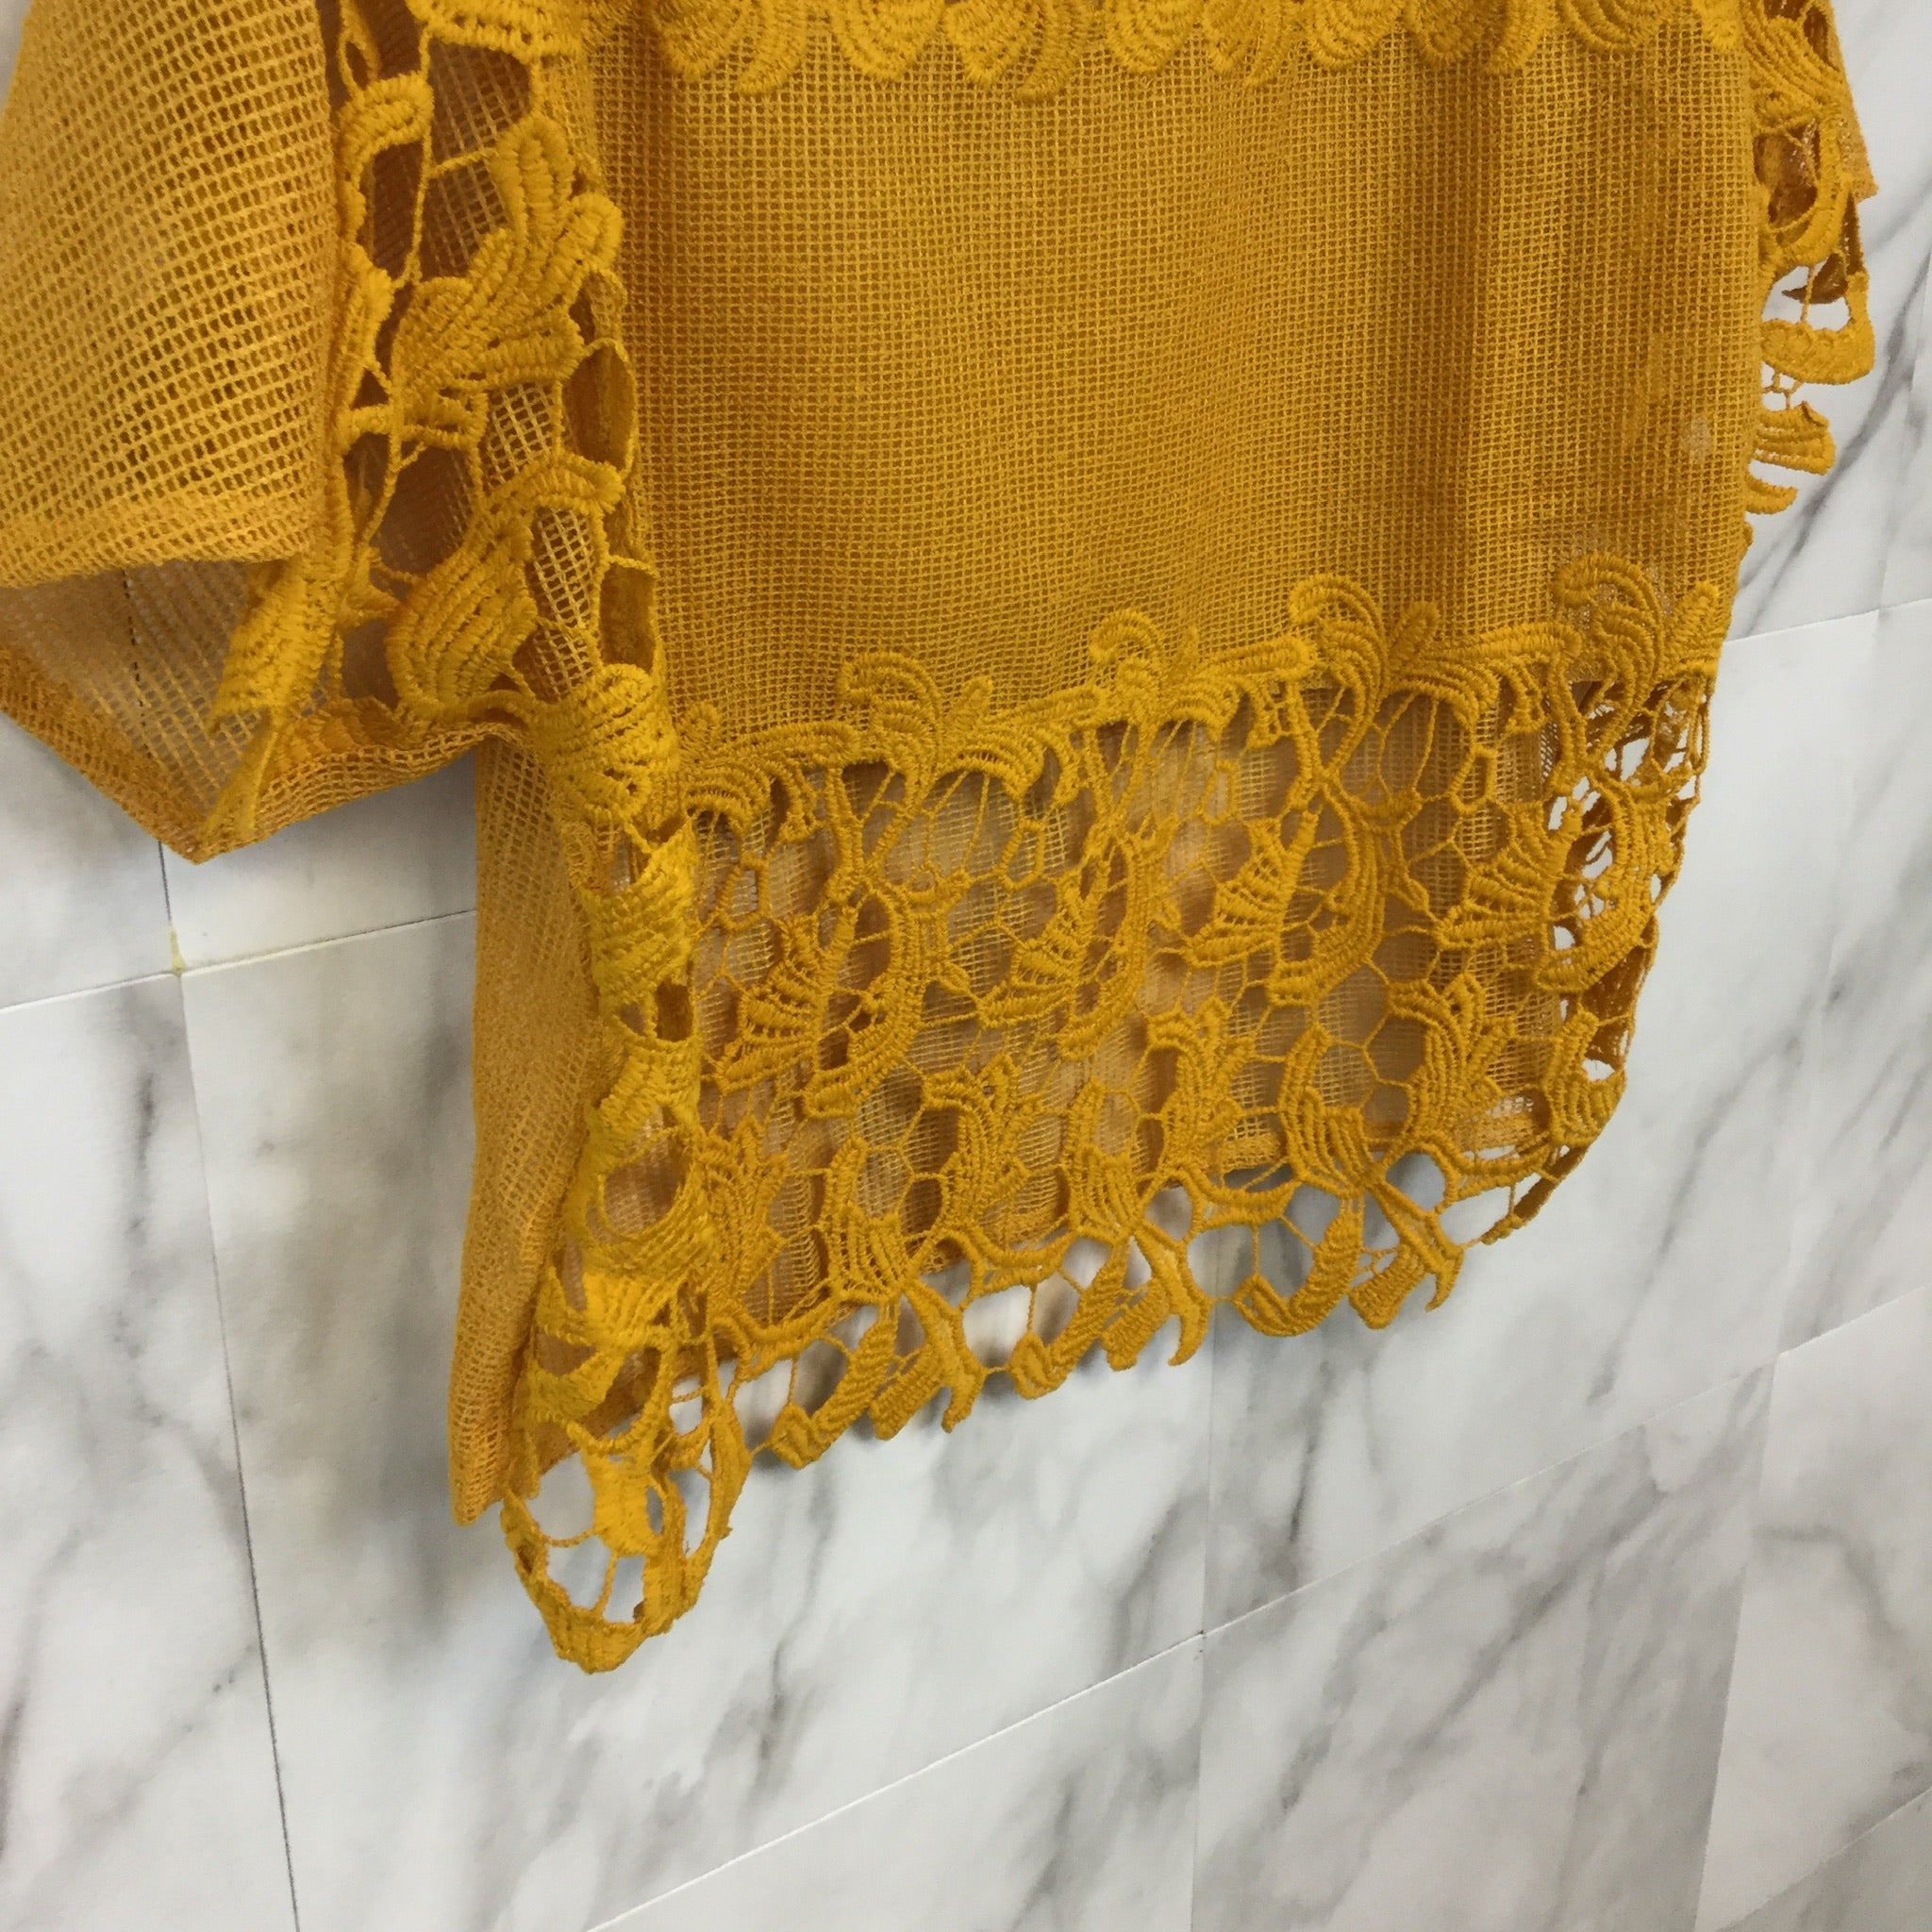 Zara Trafaluc Floral Lace Top - Size S